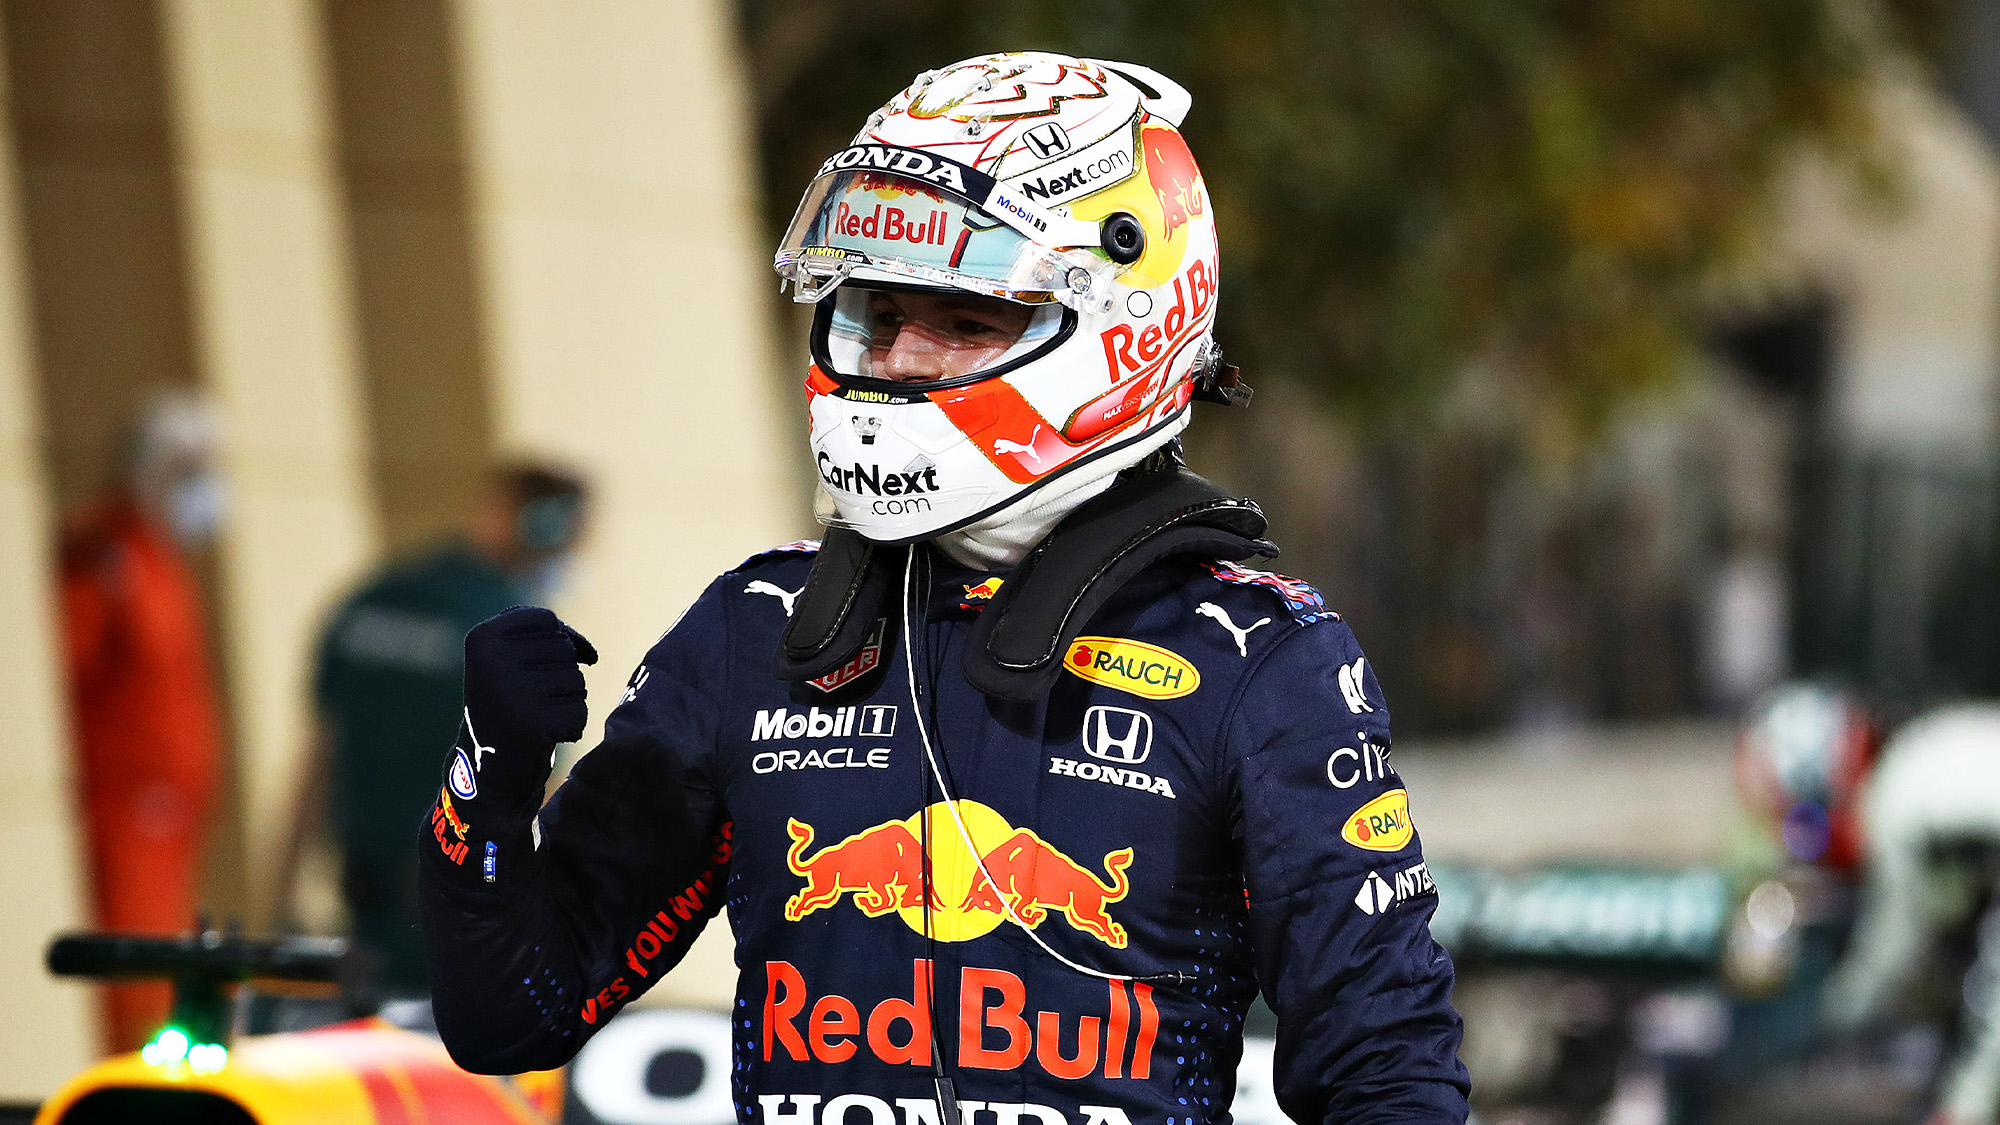 Max Verstappen celebrates clinching pole position for the 2021 Bahrain Grand Prix